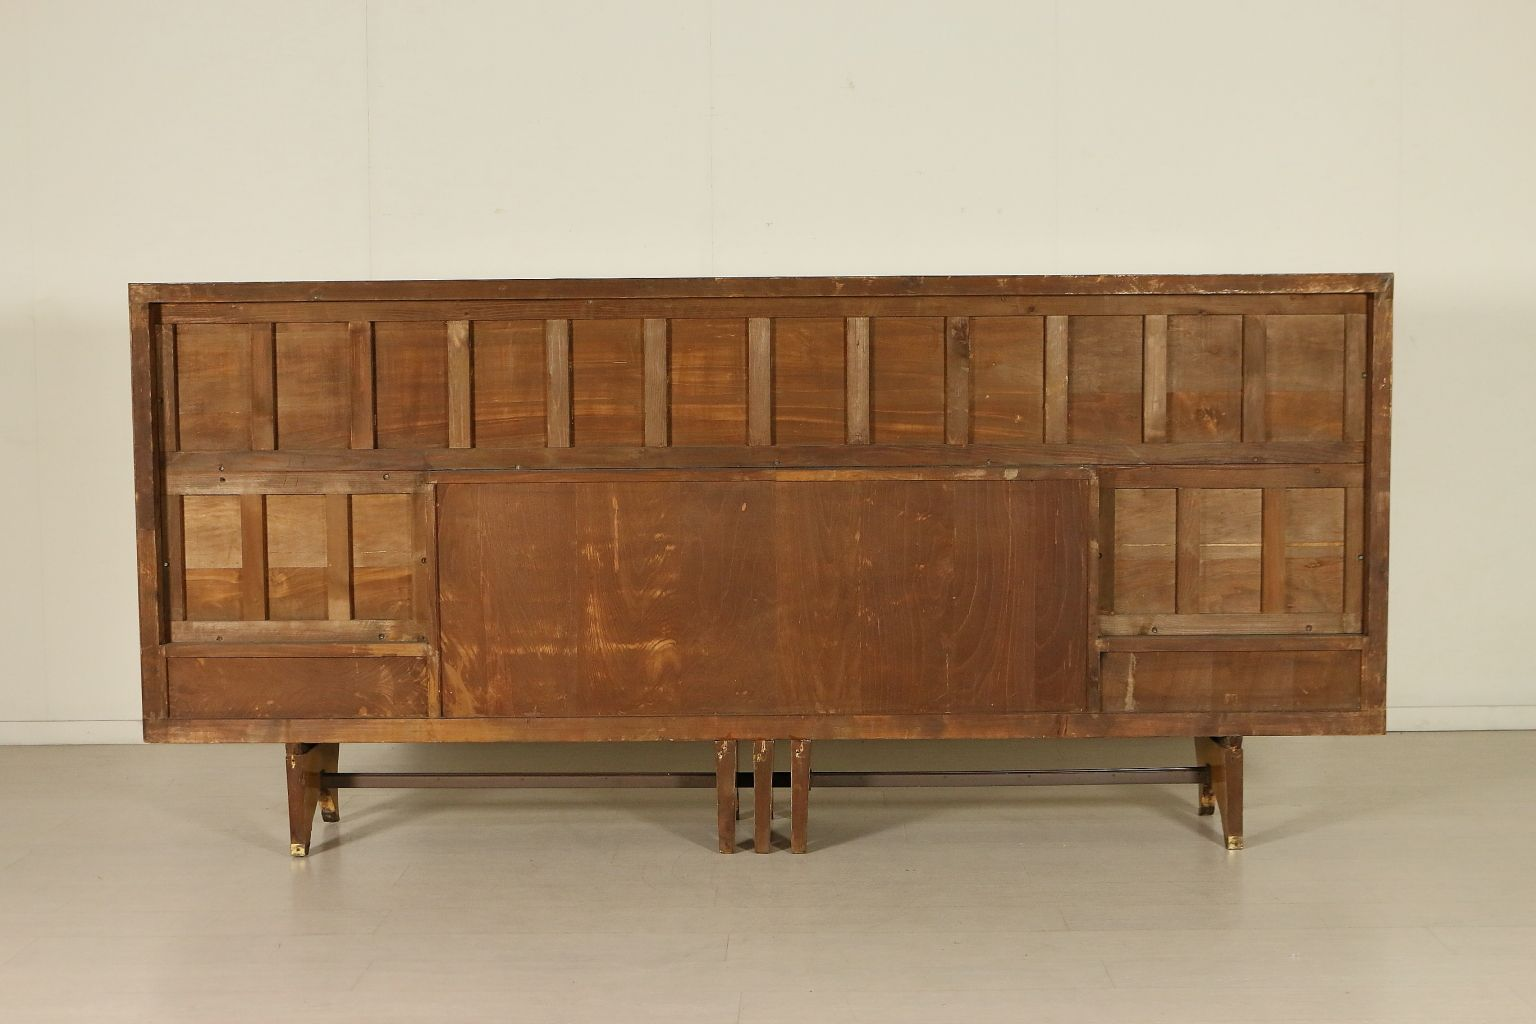 Vintage Sideboard Sliding Doors Vintage Italian Sideboard With Sliding Doors And Carved